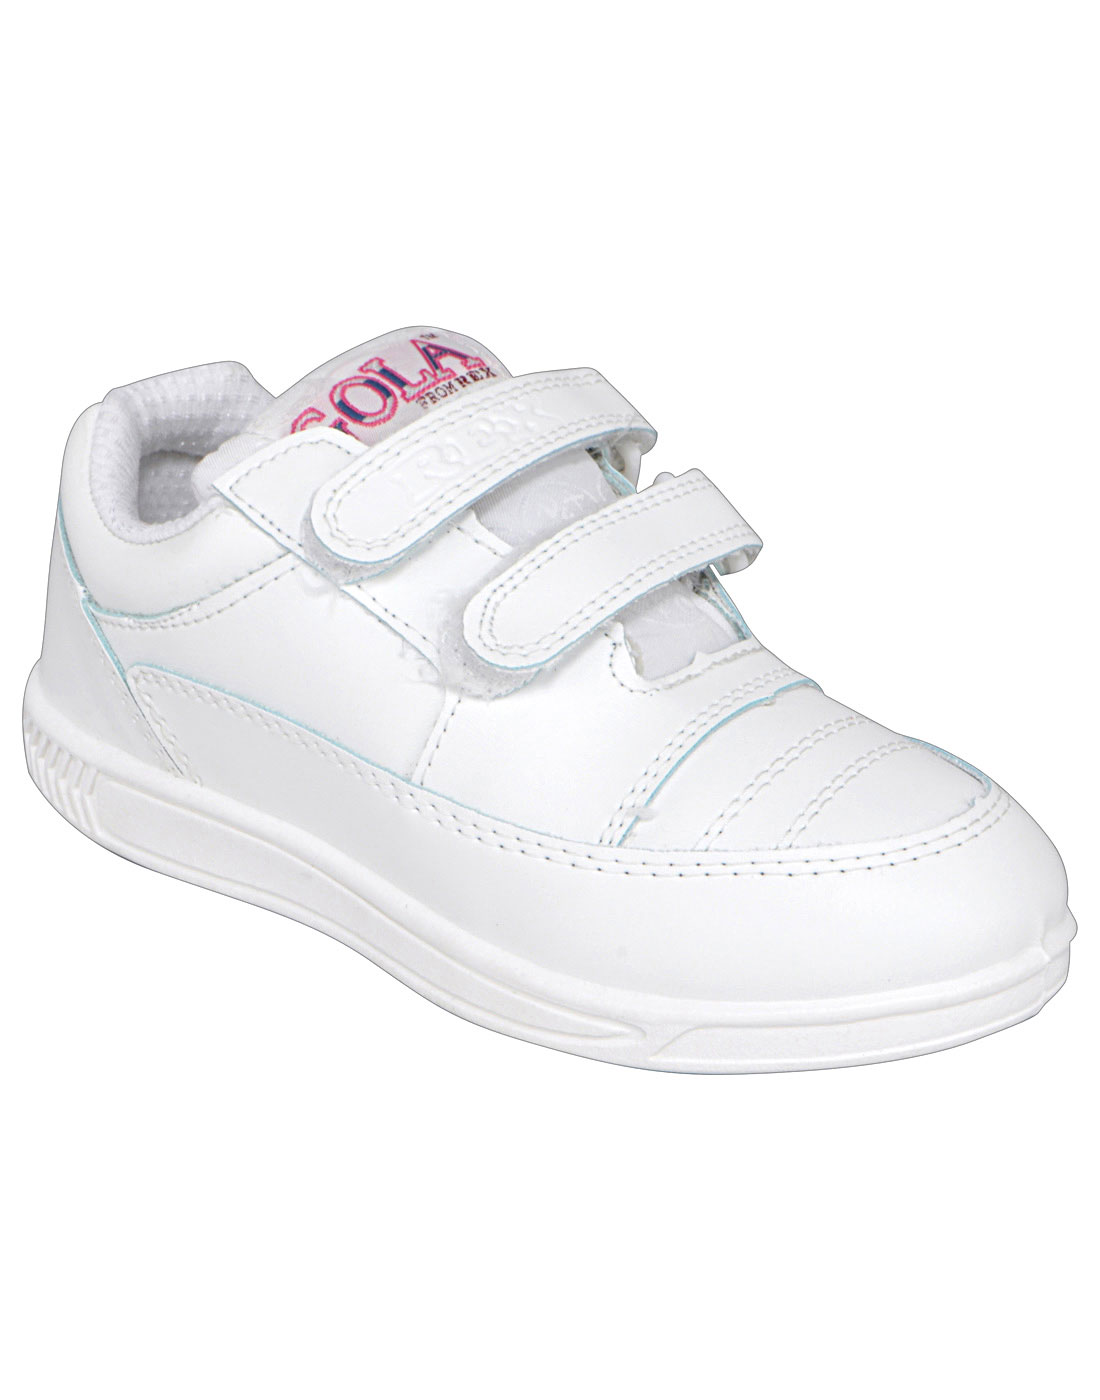 White Velcro School Shoes